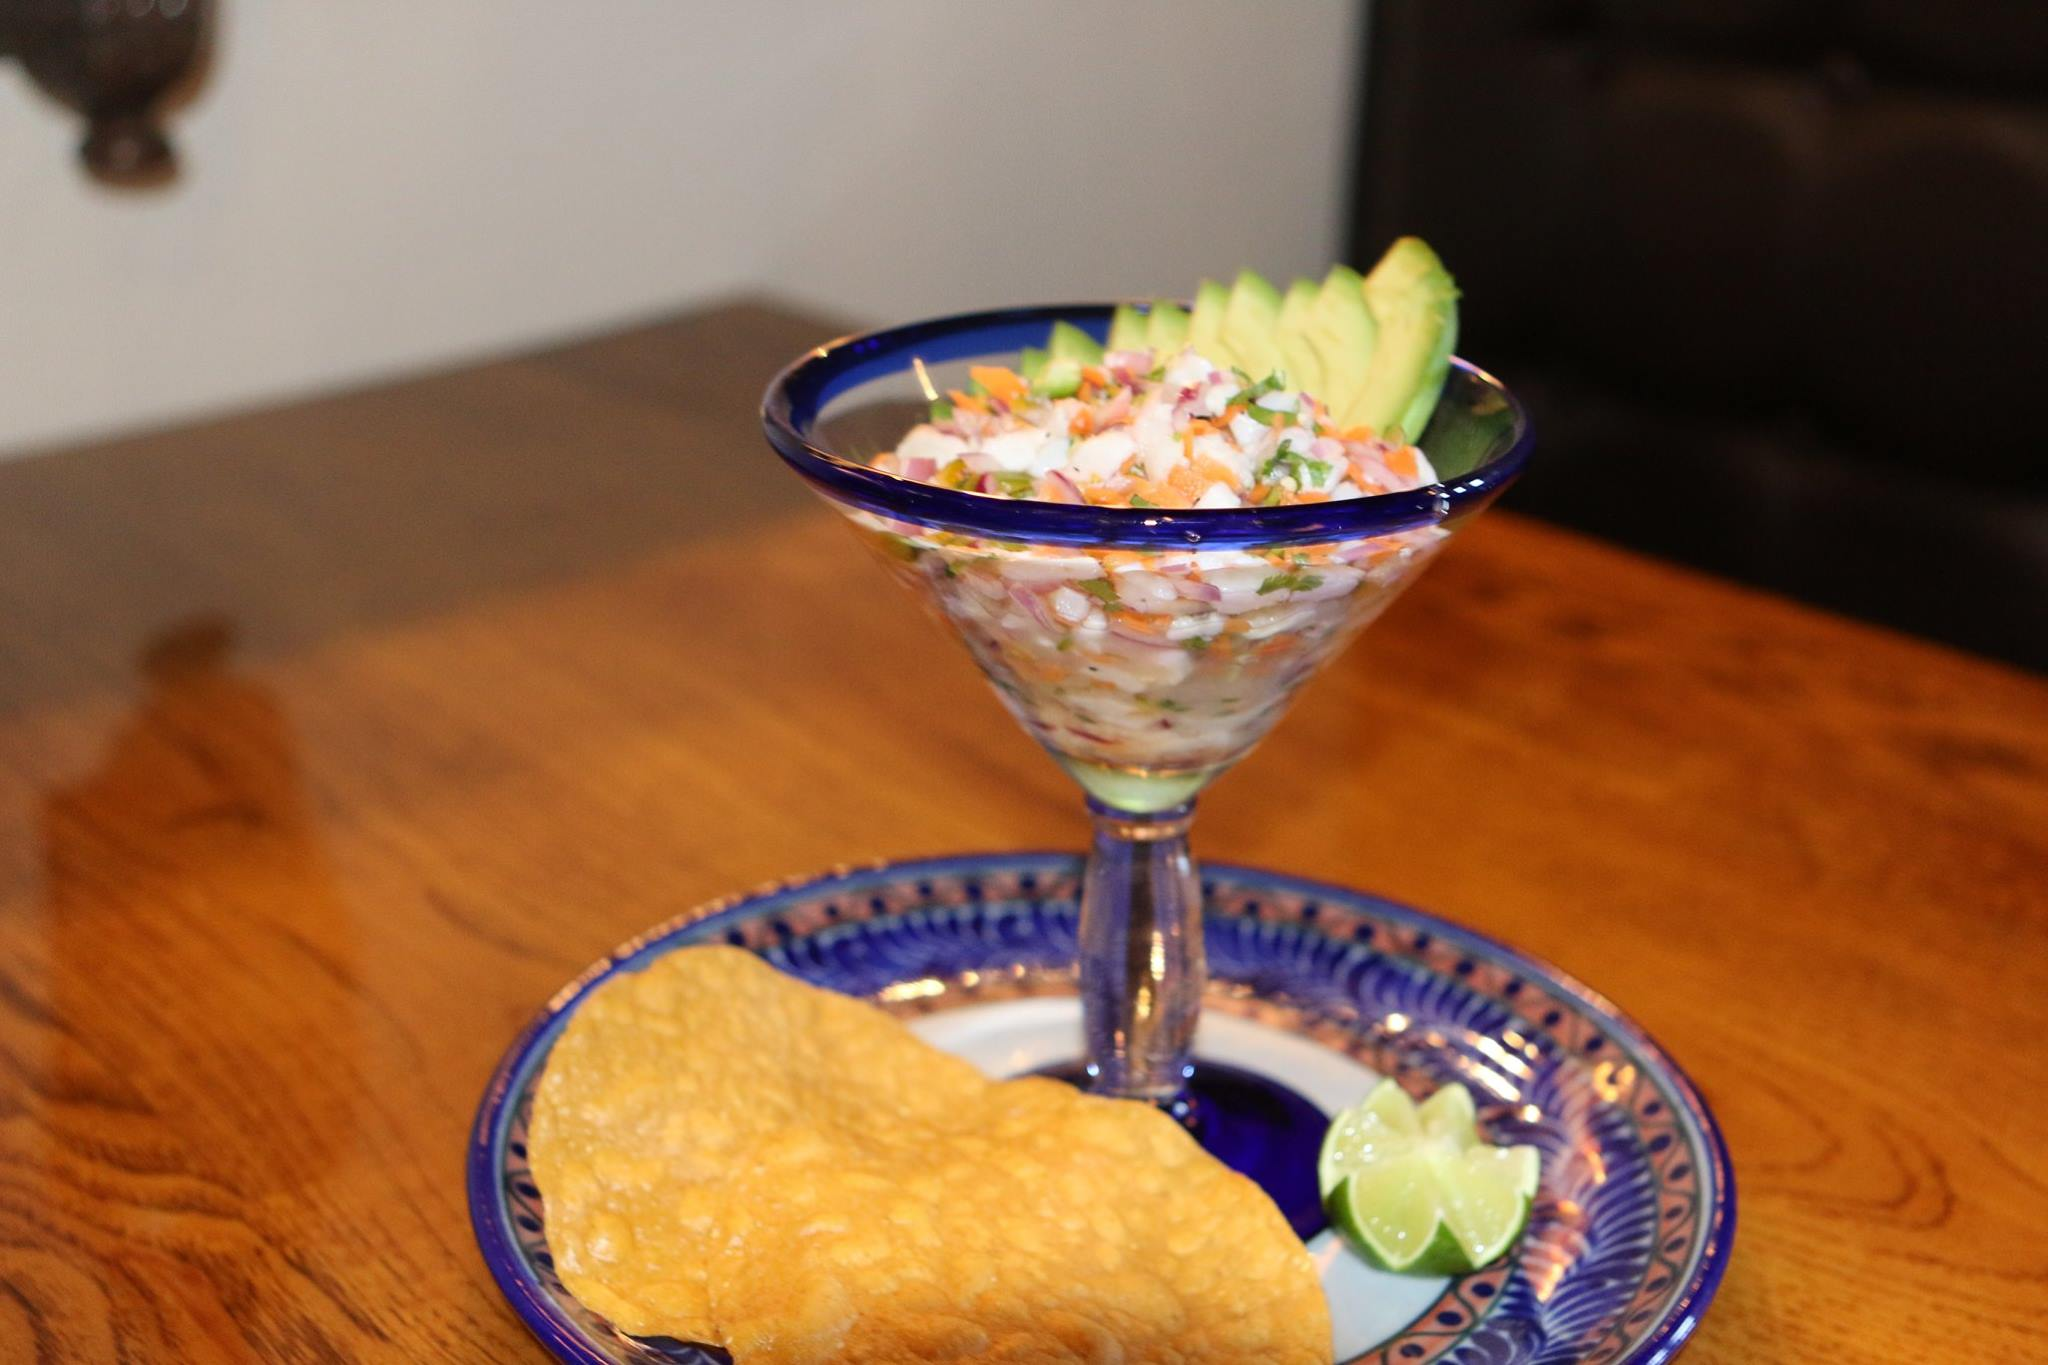 Ceviche with sliced avocado in a margarita glass served with tortilla chips and lime